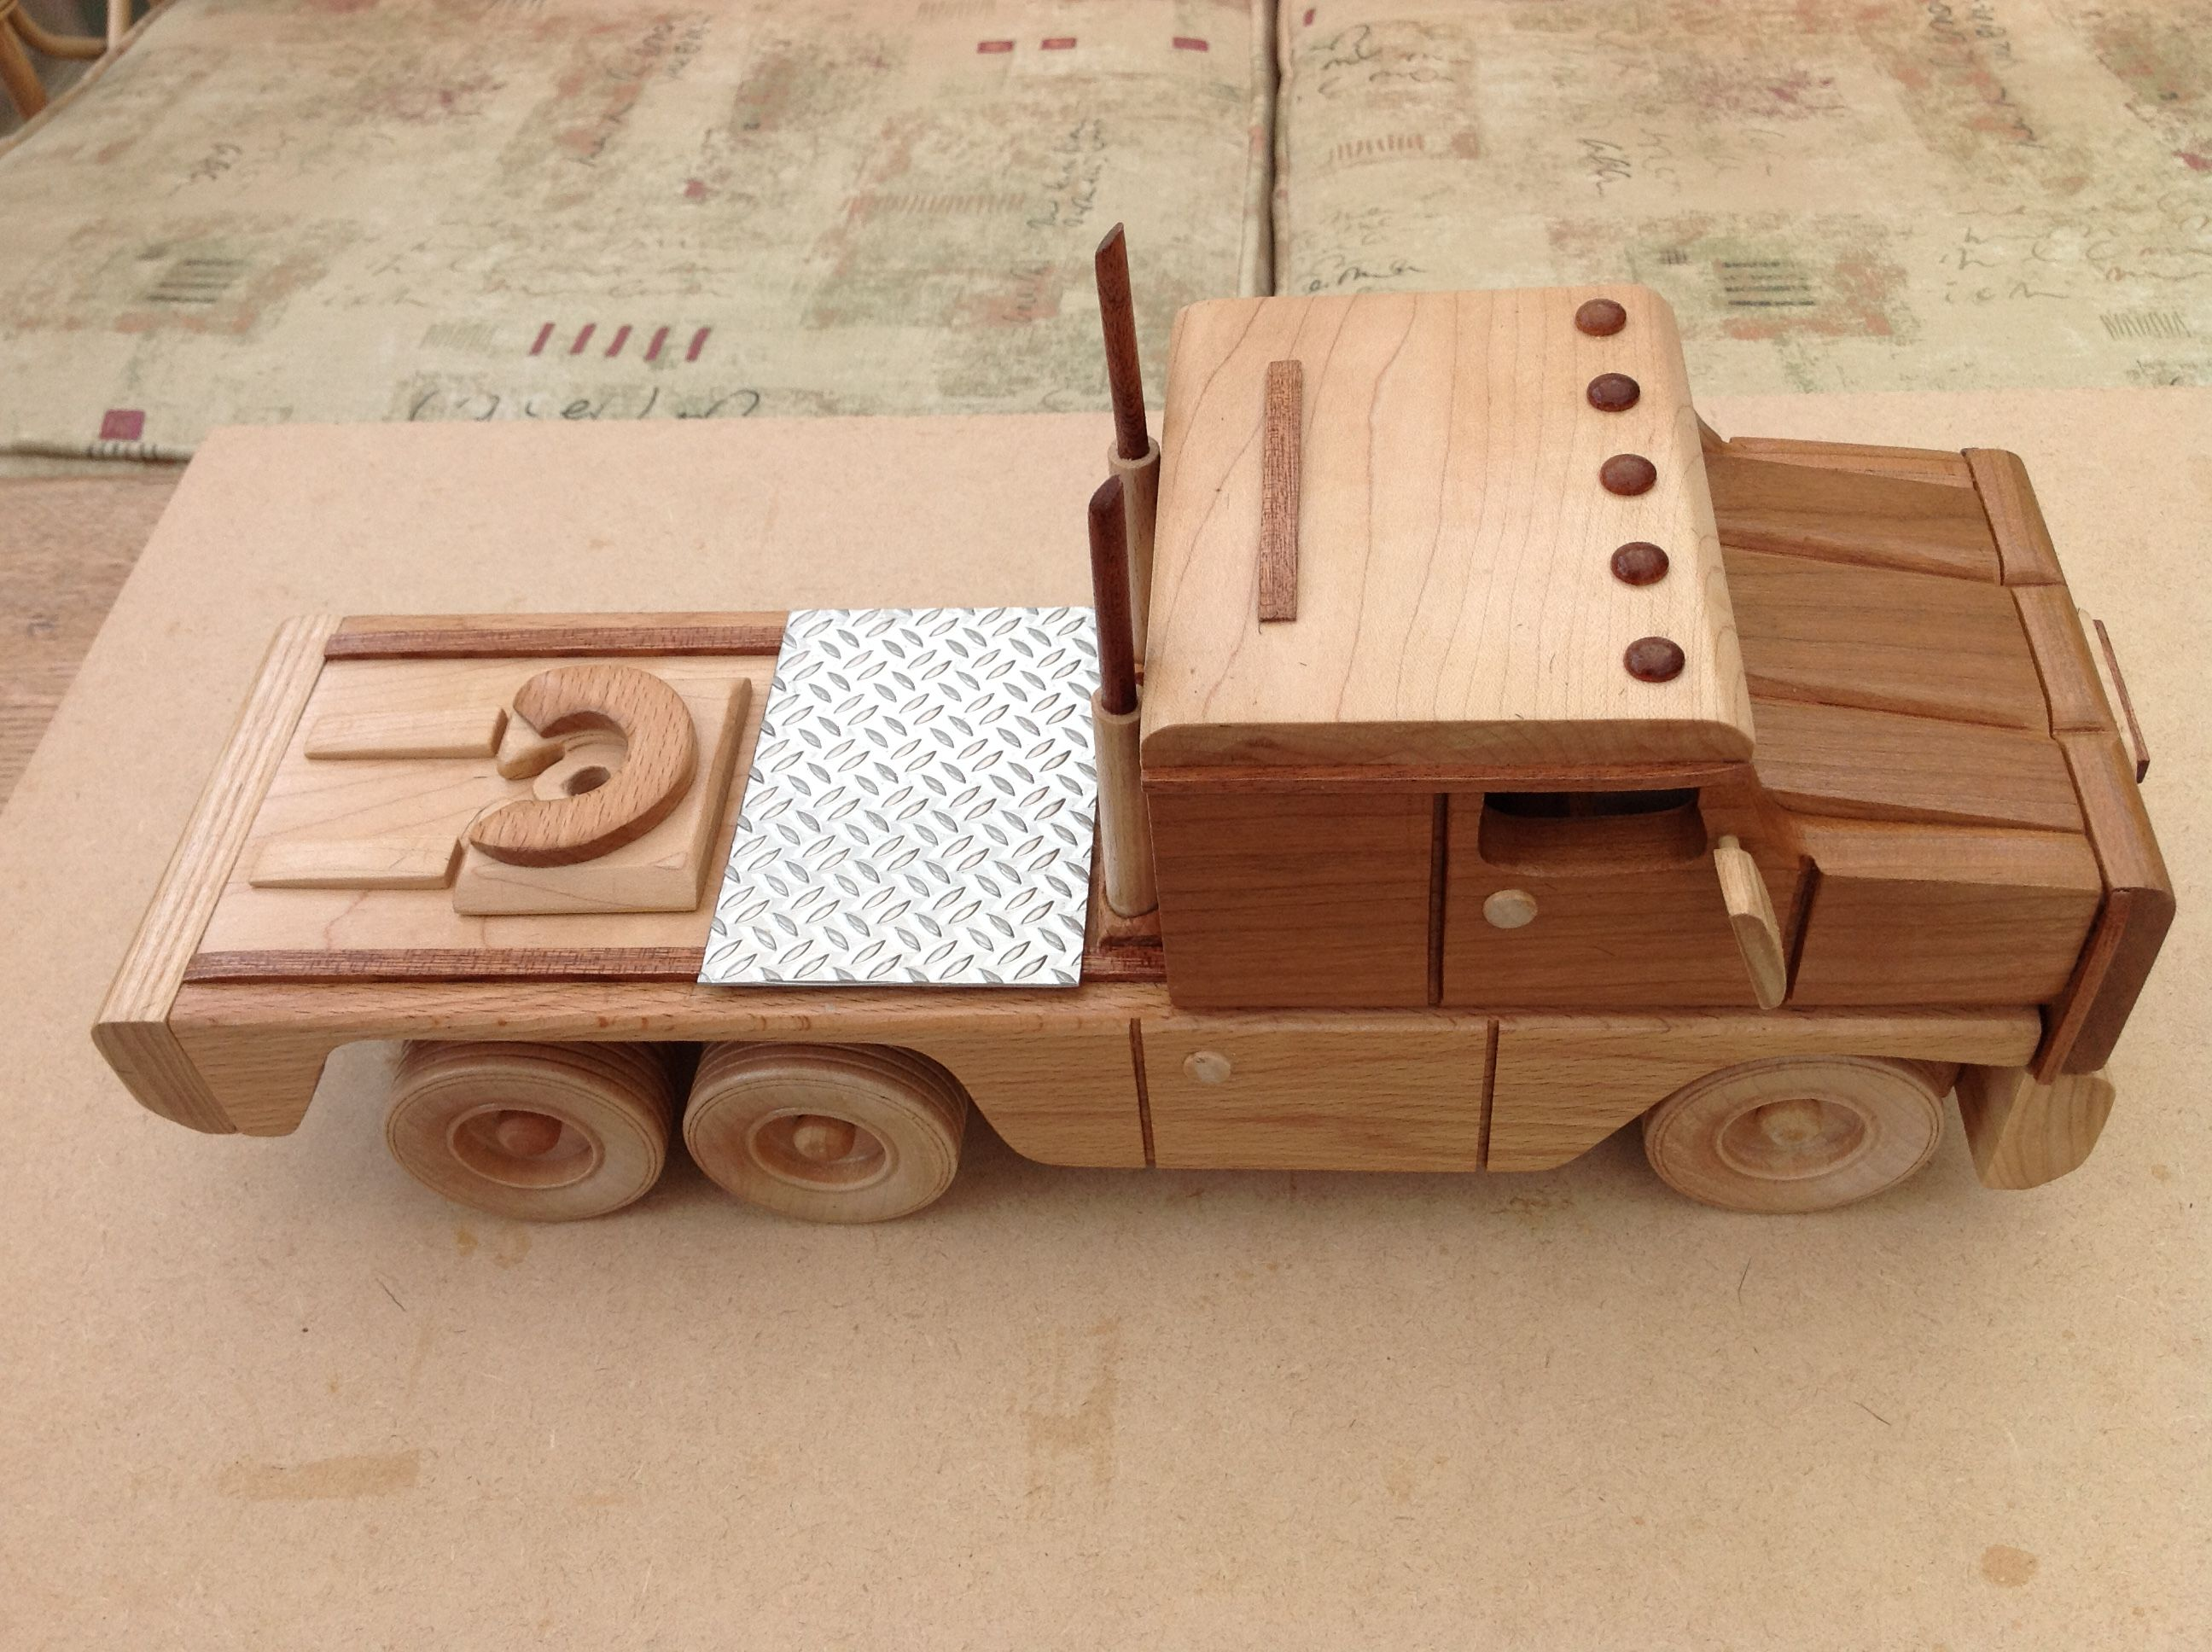 handmade wooden truck maded french, swindon england